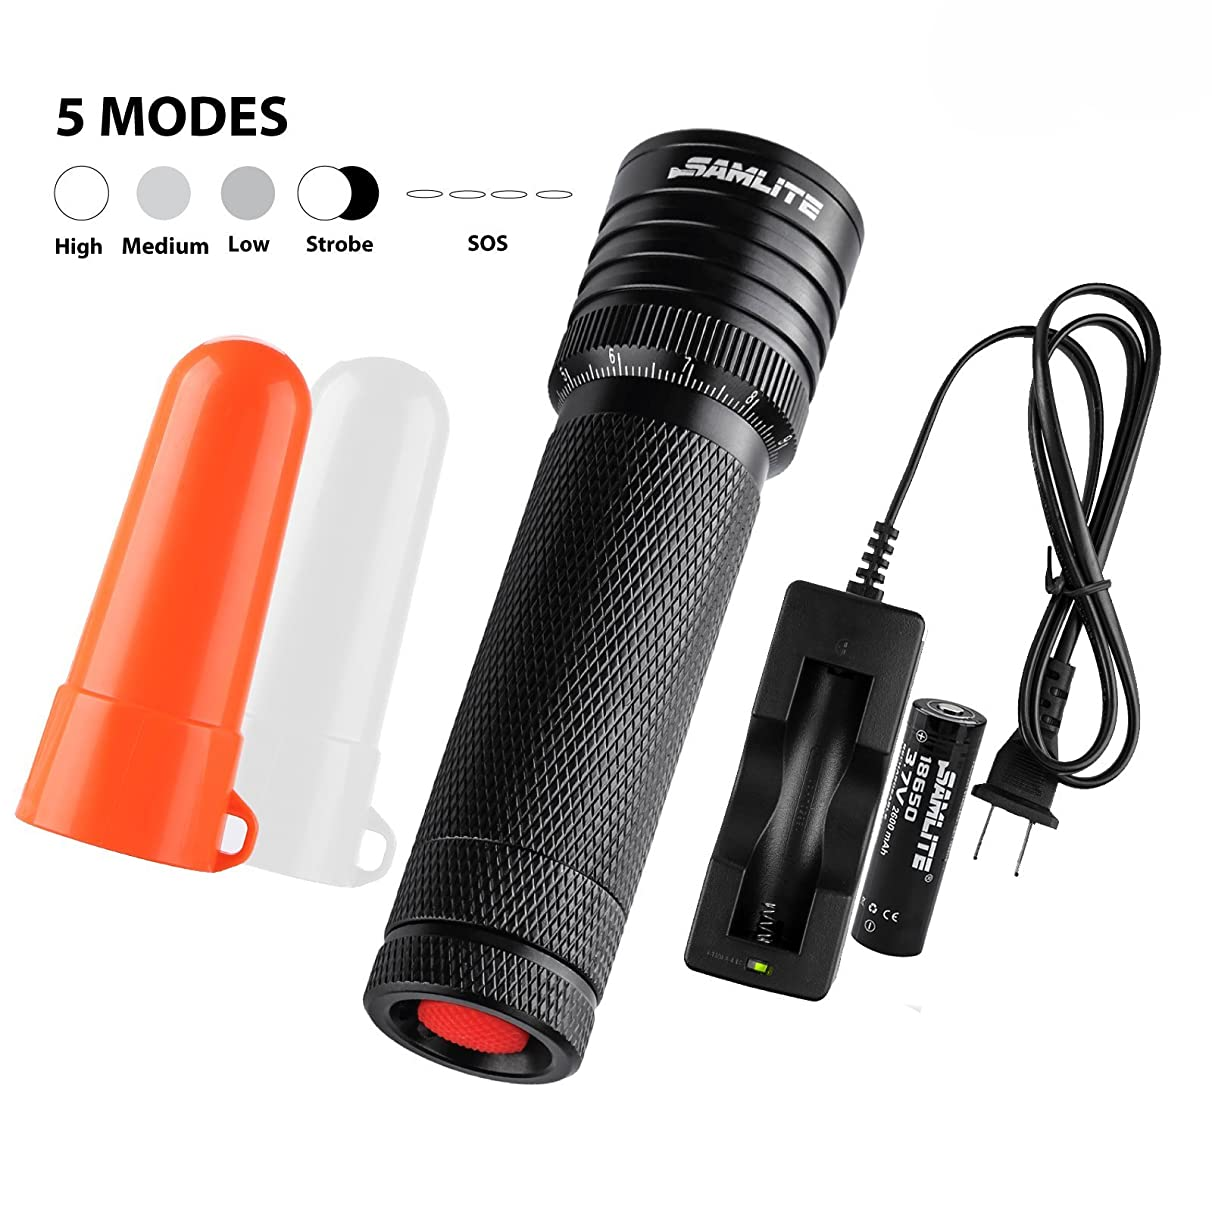 SAMLITE - LED Flashlight Tactical Military Grade, Super Bright 460 Lumens, Cree-T6, Water Resistant, Adjustable Focus Zoom Light, Life of up To 100,000 hours, White and Red Diffuser Included